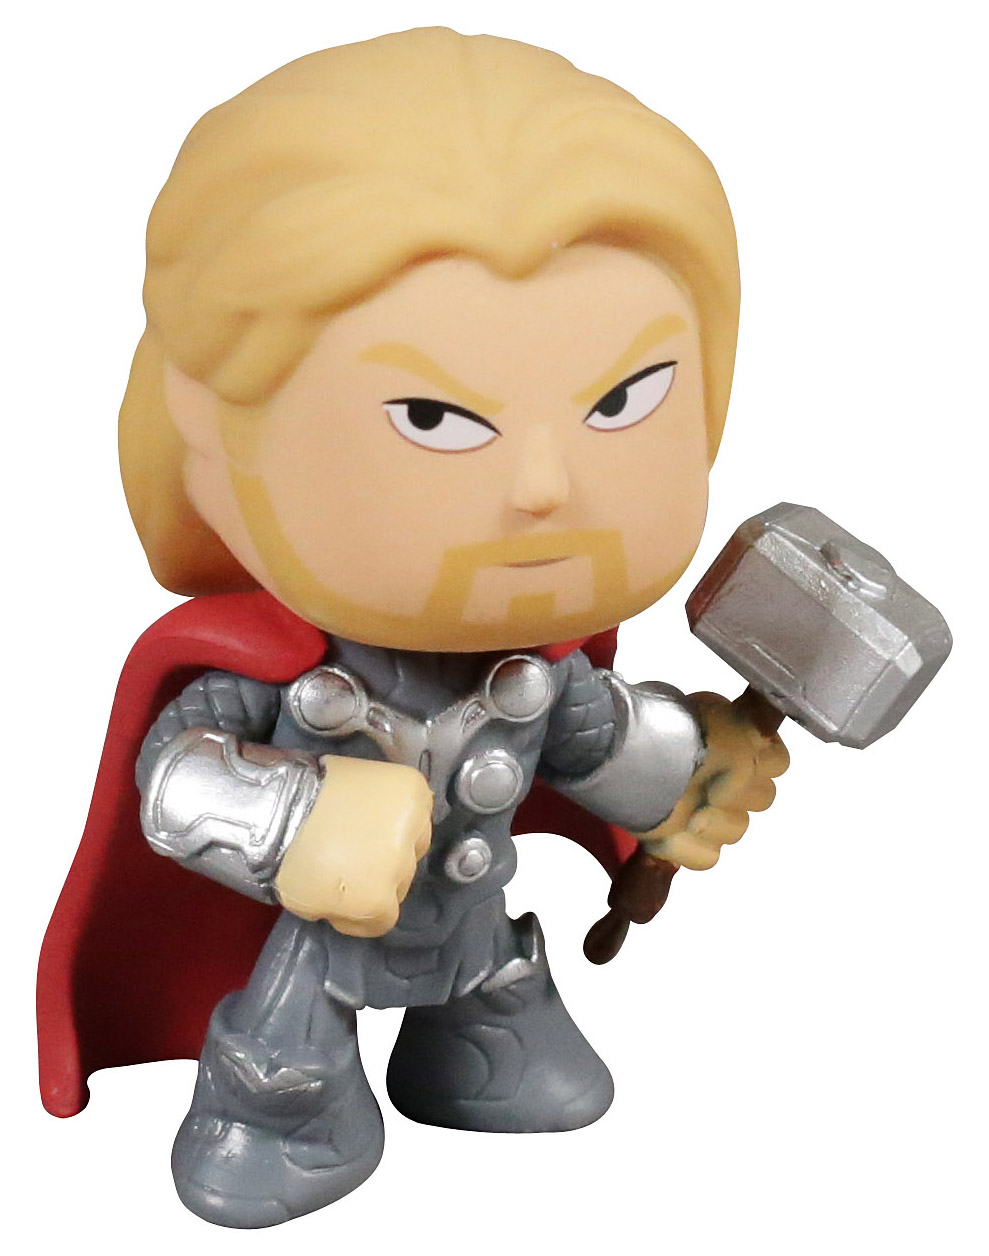 2015 Funko Mystery Minis Avengers Age of Ultron #13 Thor